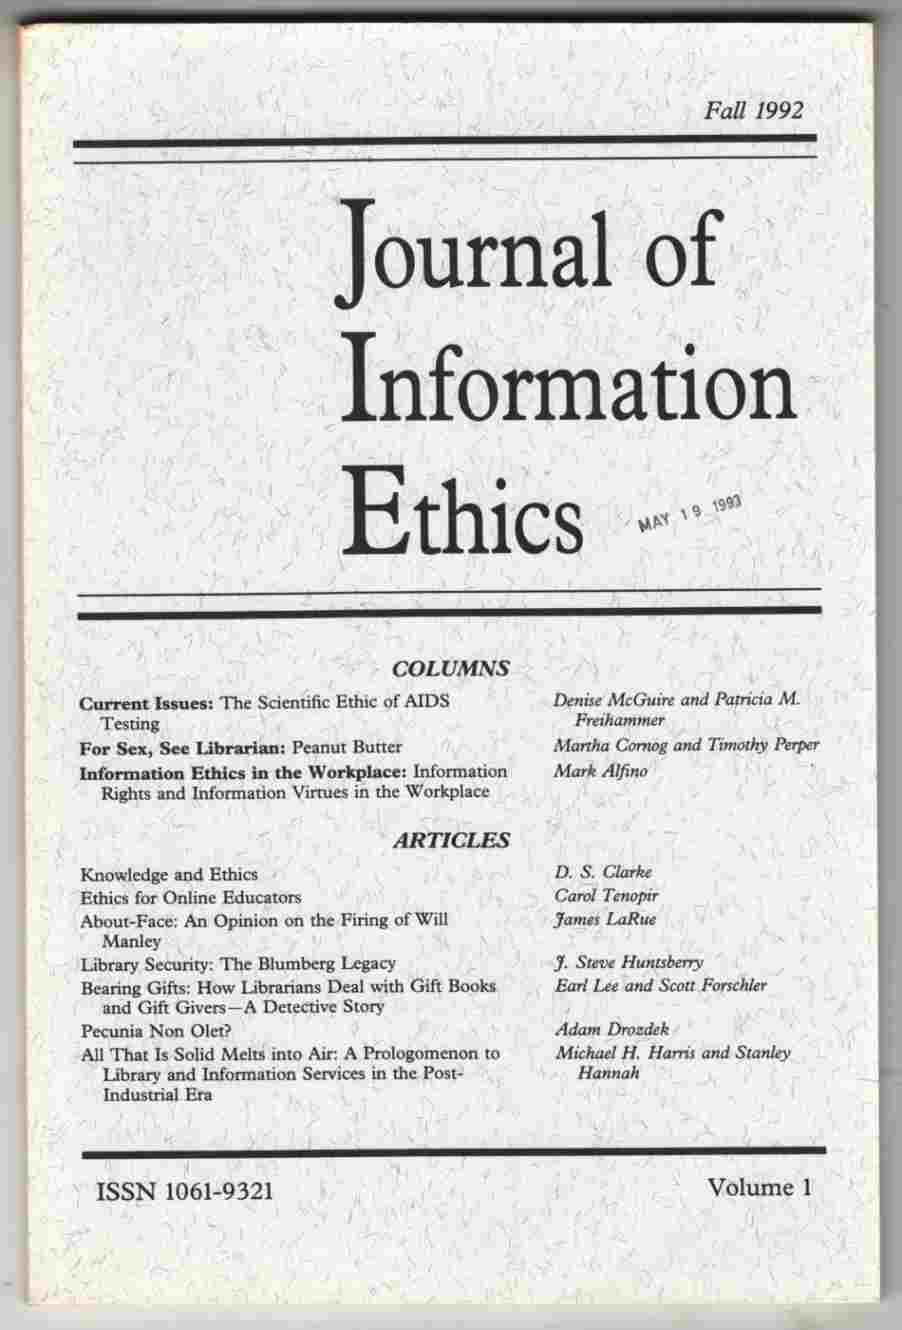 Image for Journal of Information Ethics Fall 1992 Vol. 1